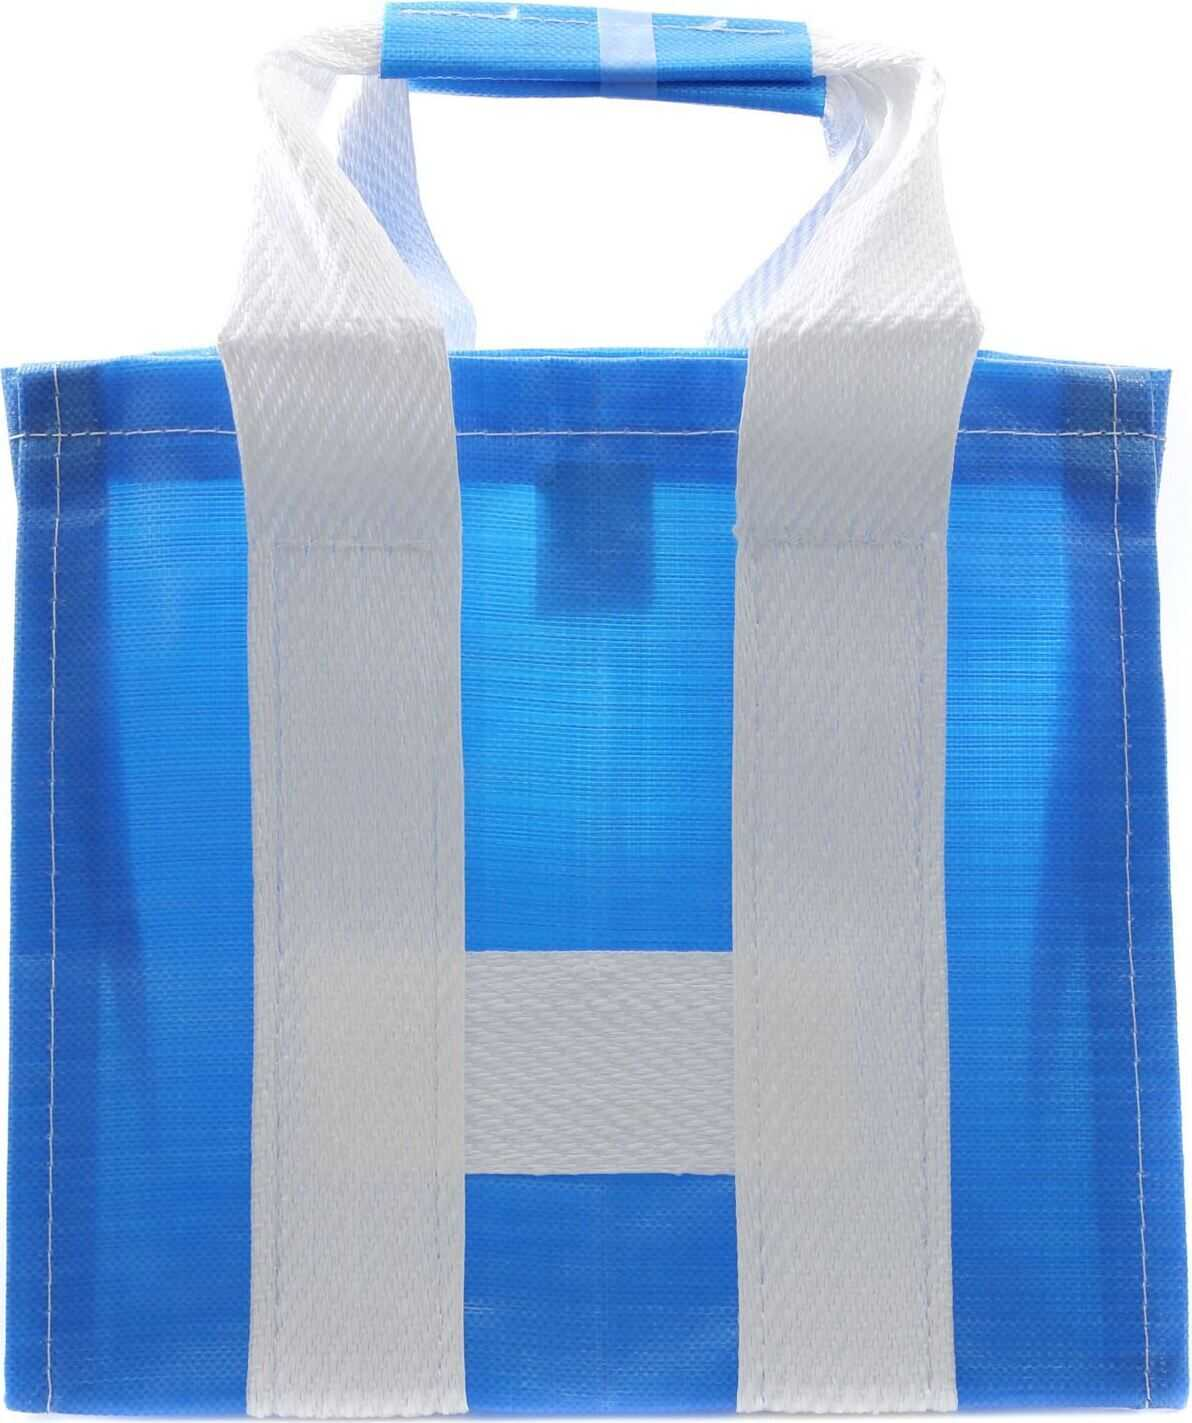 Comme des Garçons Blue And White Shopper Bag With Woven Effect Blue